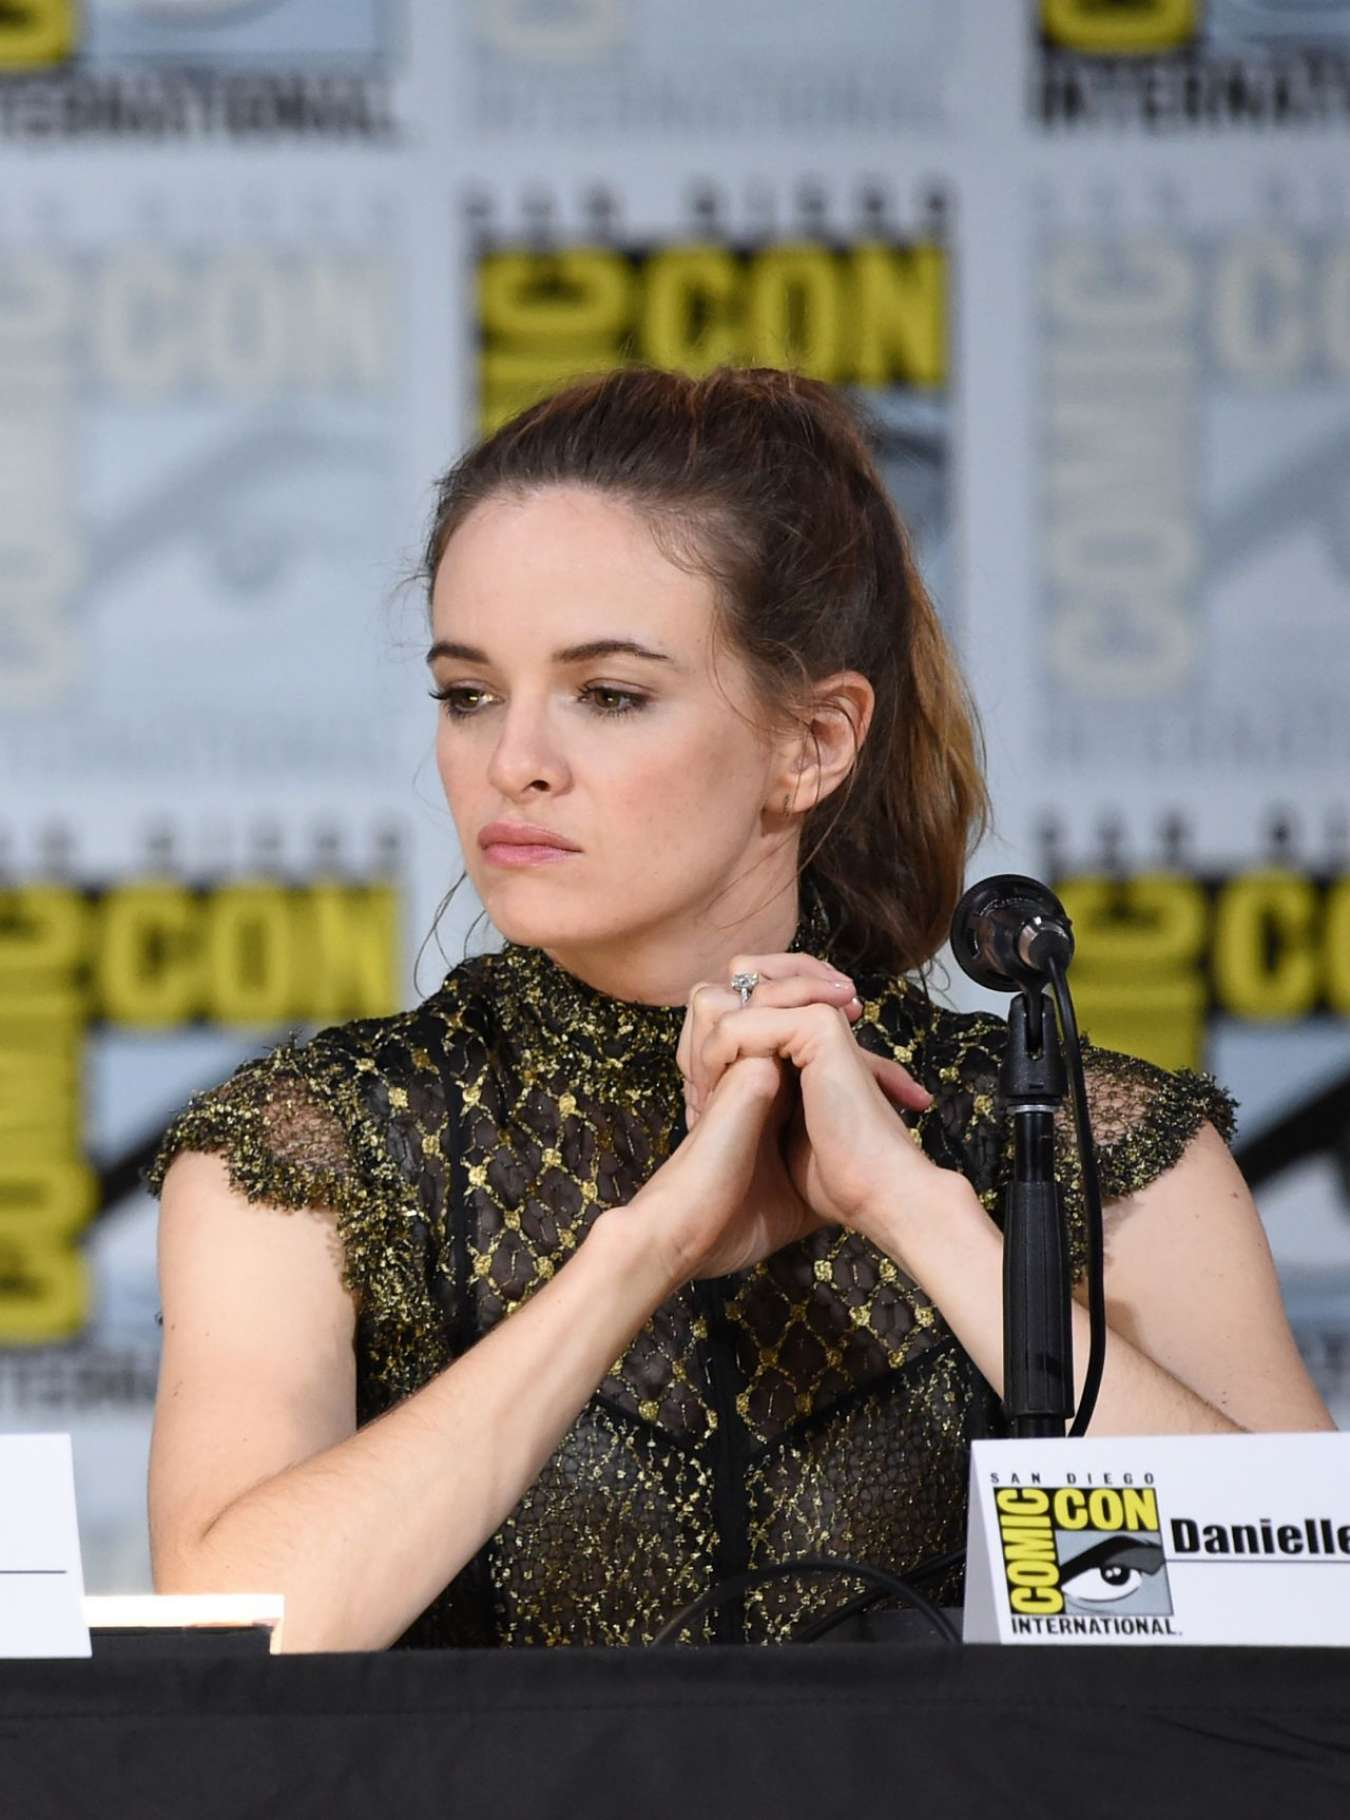 Danielle Panabaker - The Flash Movie Panel at Comic-Con 2017